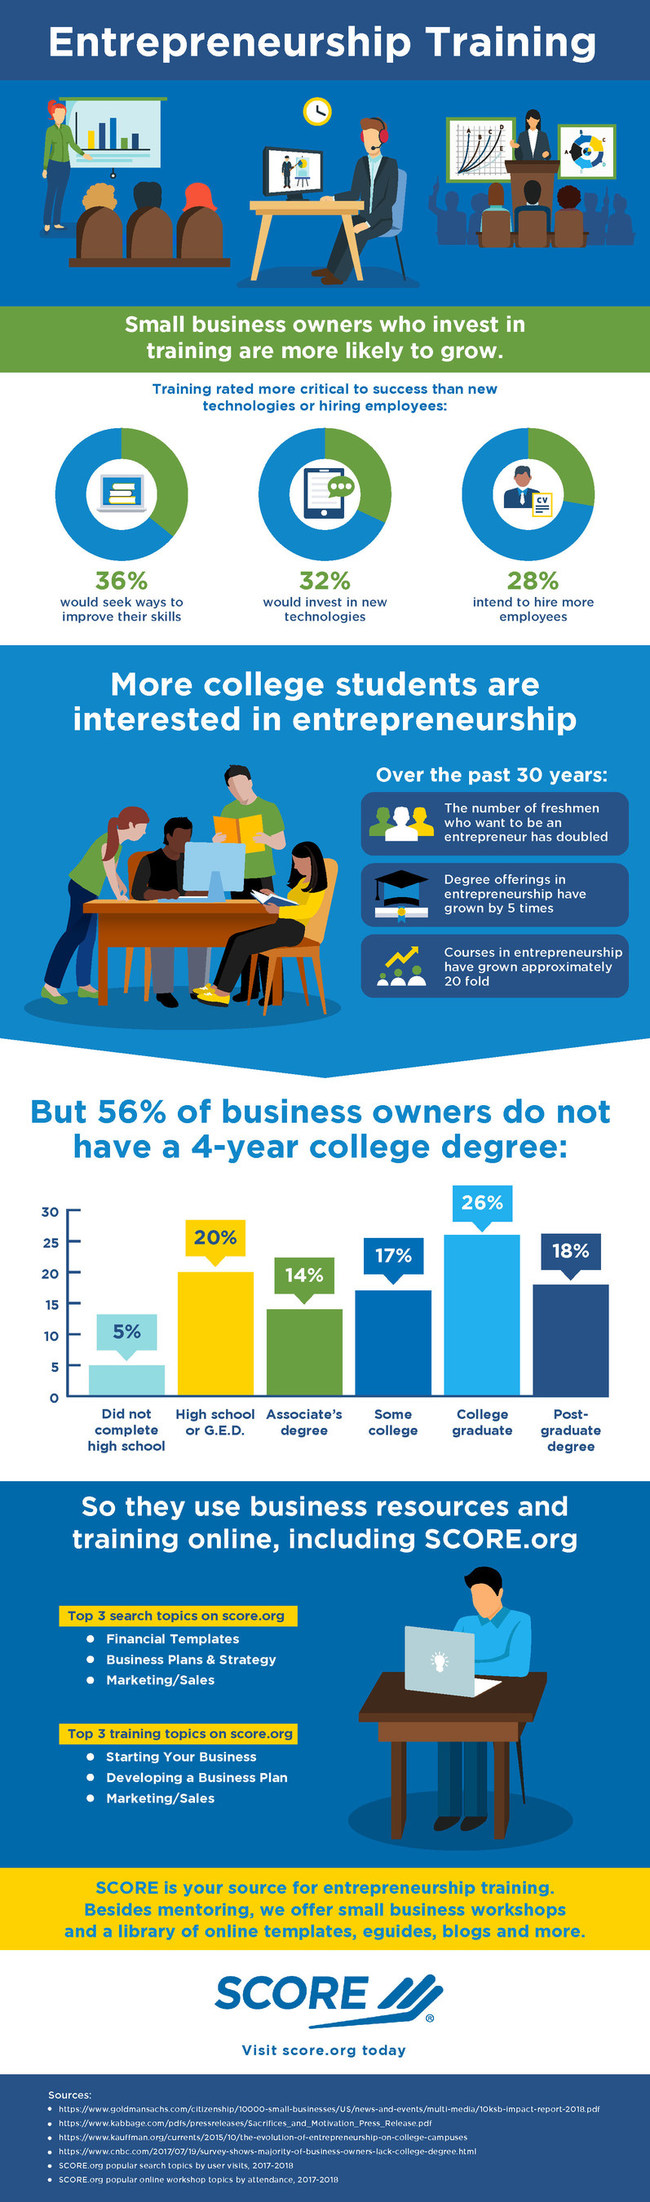 Business owners are turning to training and education to spur business growth, according to data compiled by SCORE, mentors to America's small businesses. Although degree offerings in entrepreneurship have grown by five times in the past 30 years, 56% of business owners do not have a four-year degree – and are instead taking advantage of other low-cost educational resources.